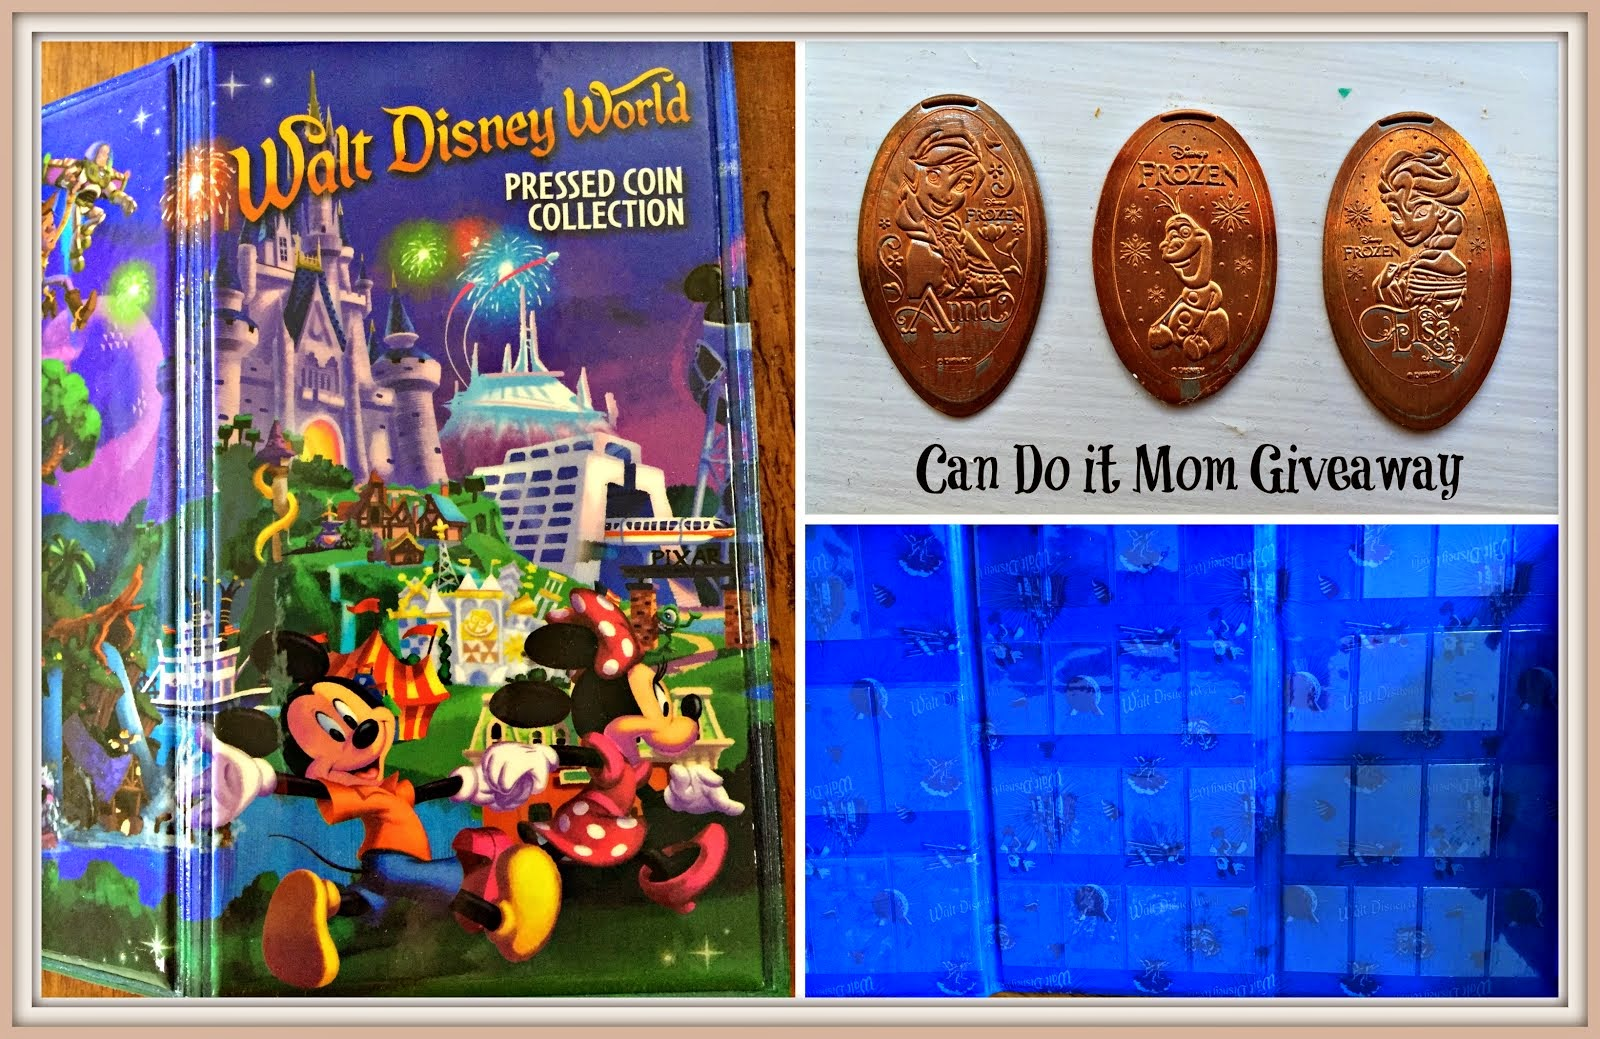 WDW Pressed Coin Giveaway